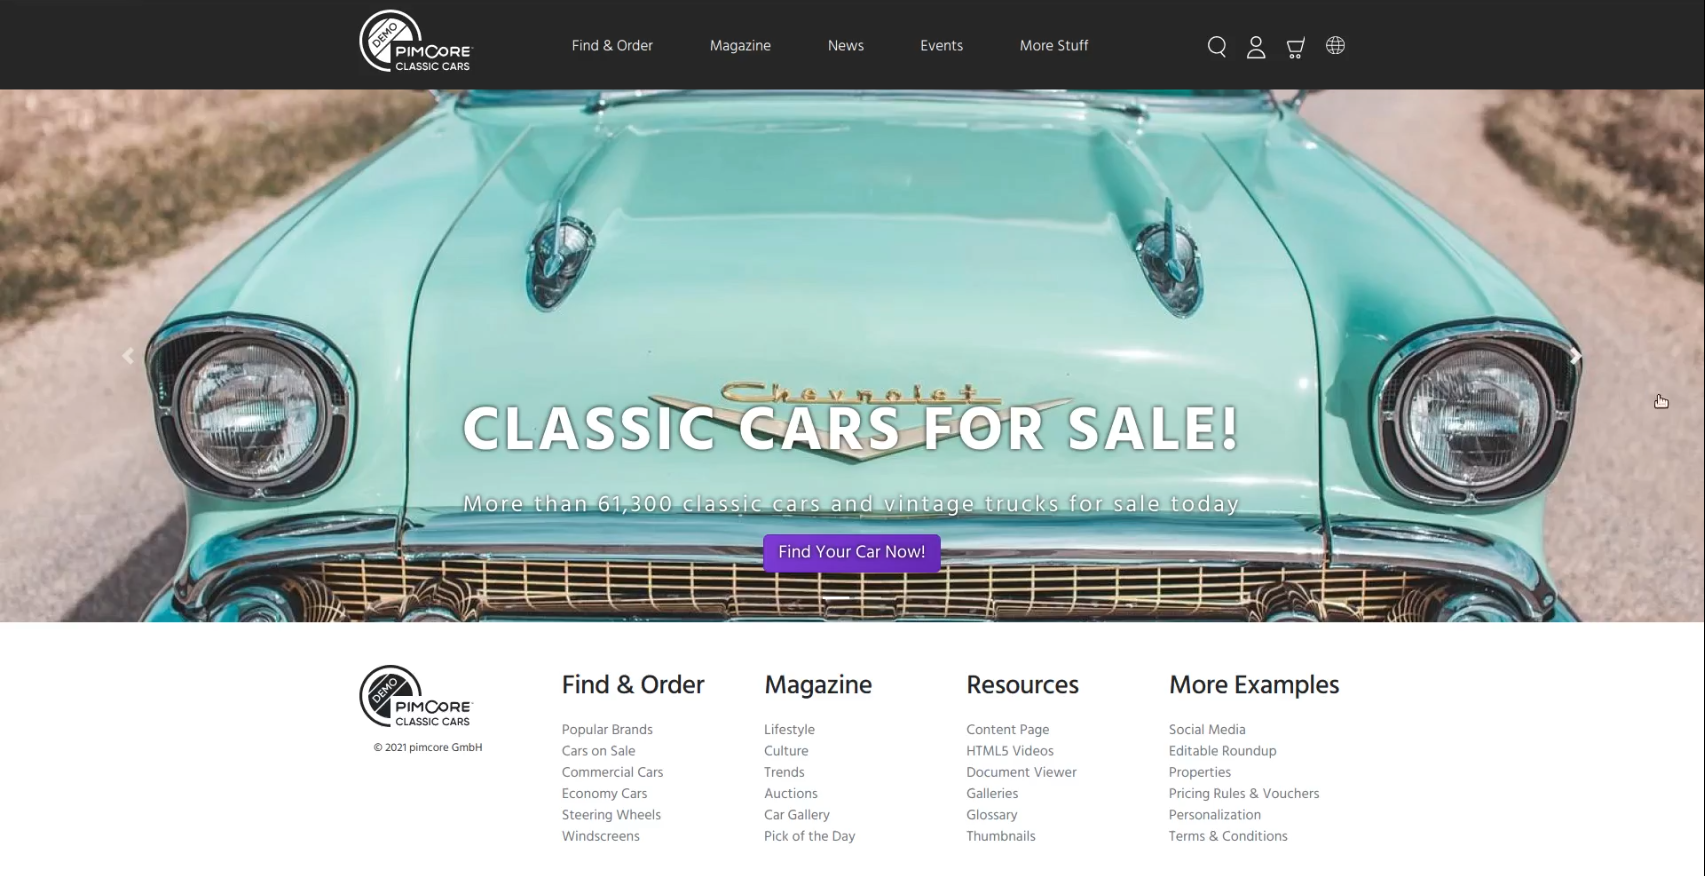 Previewing the newly-created landing page in Pimcore